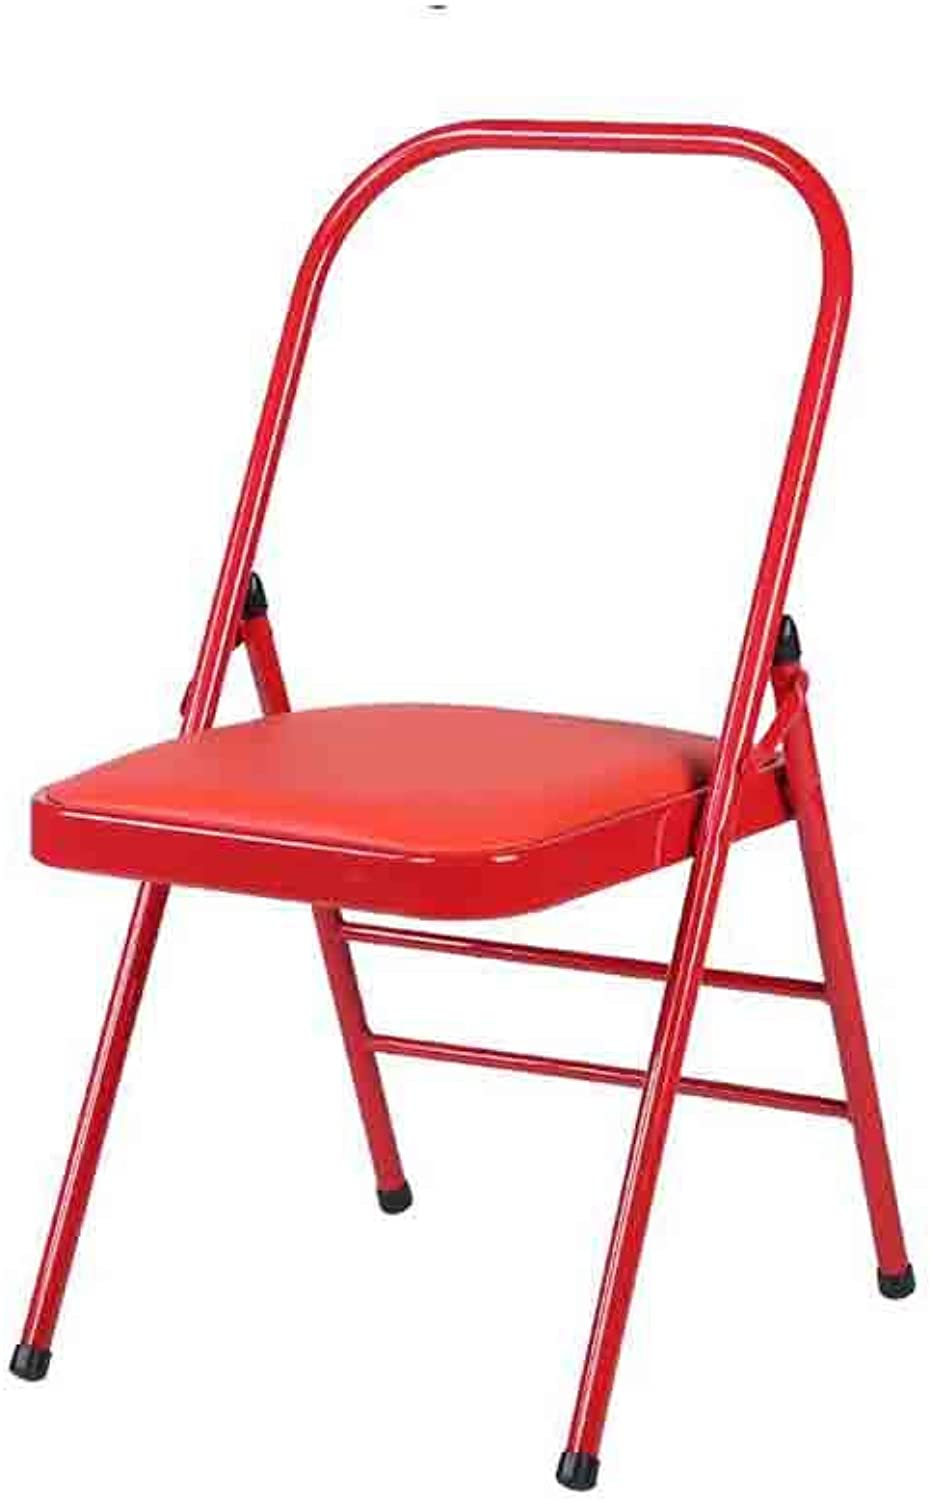 QIQI-LIFE Folding Chair,PU Padded Desk Chair,Quality Faux Leather Padded Strong Metal Frame Home, Office and Computer Back Rest Chair (color   Red)